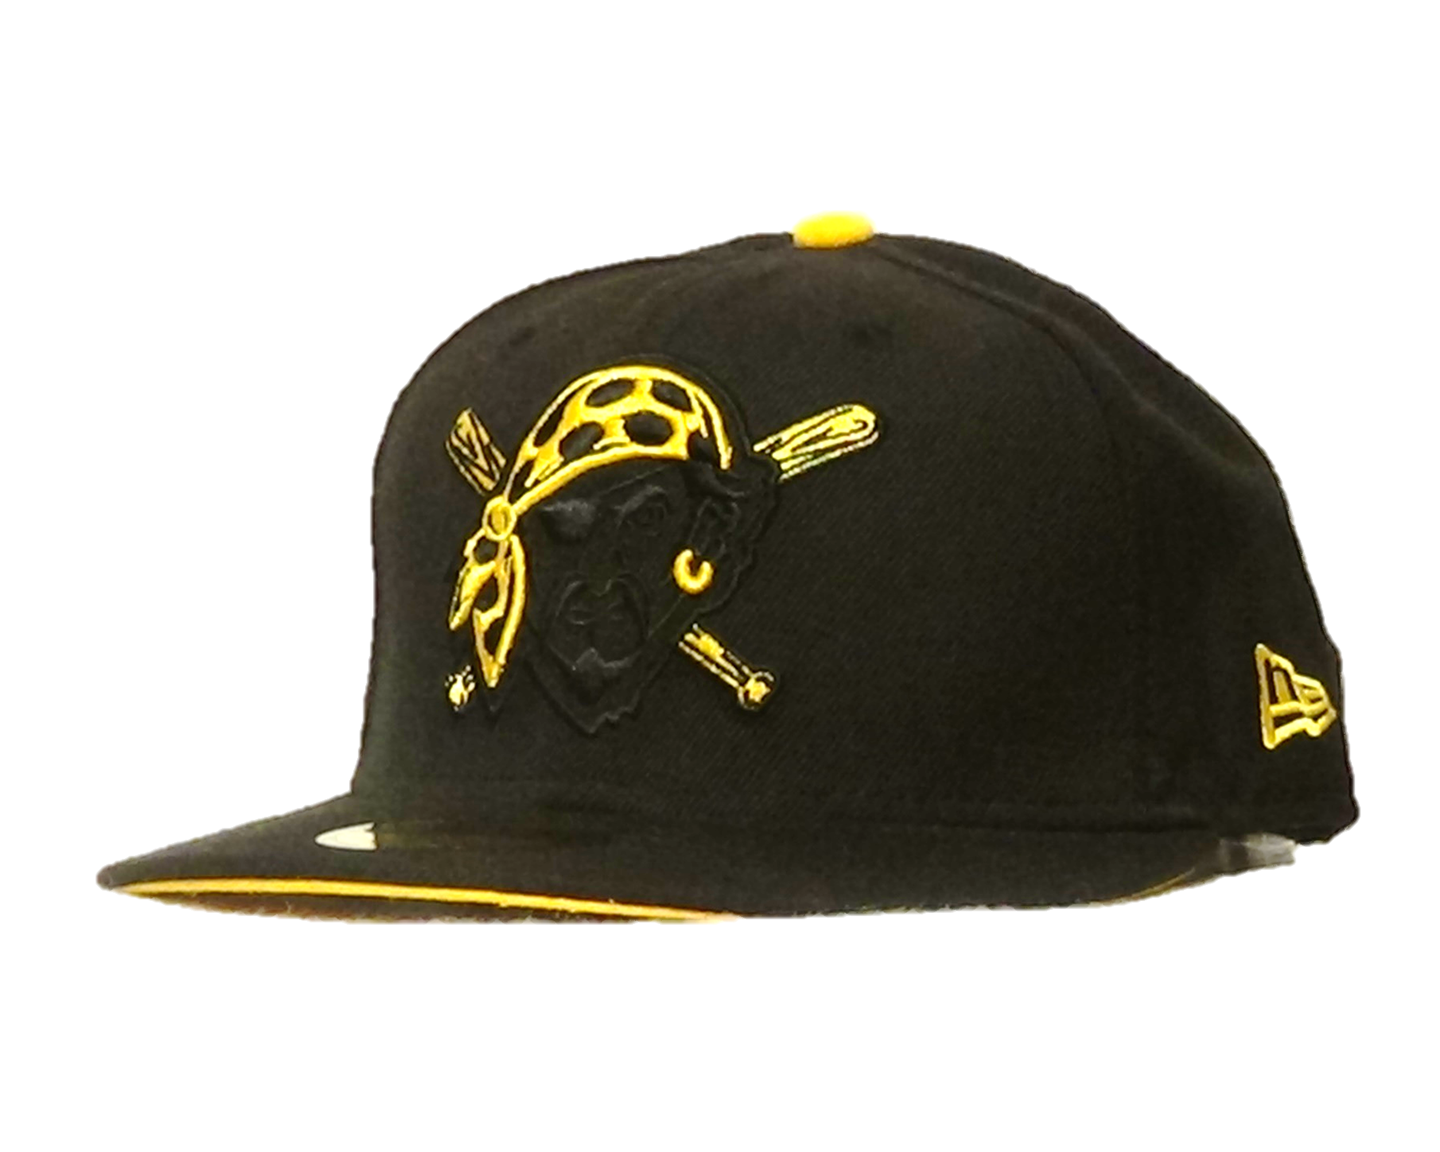 20e84b28ed0 New Era 59fifty fitted black hat for any fan of the Pirates. Features the  Pirates design embroidered with a yellow bandana on the front. Great for  all fans.